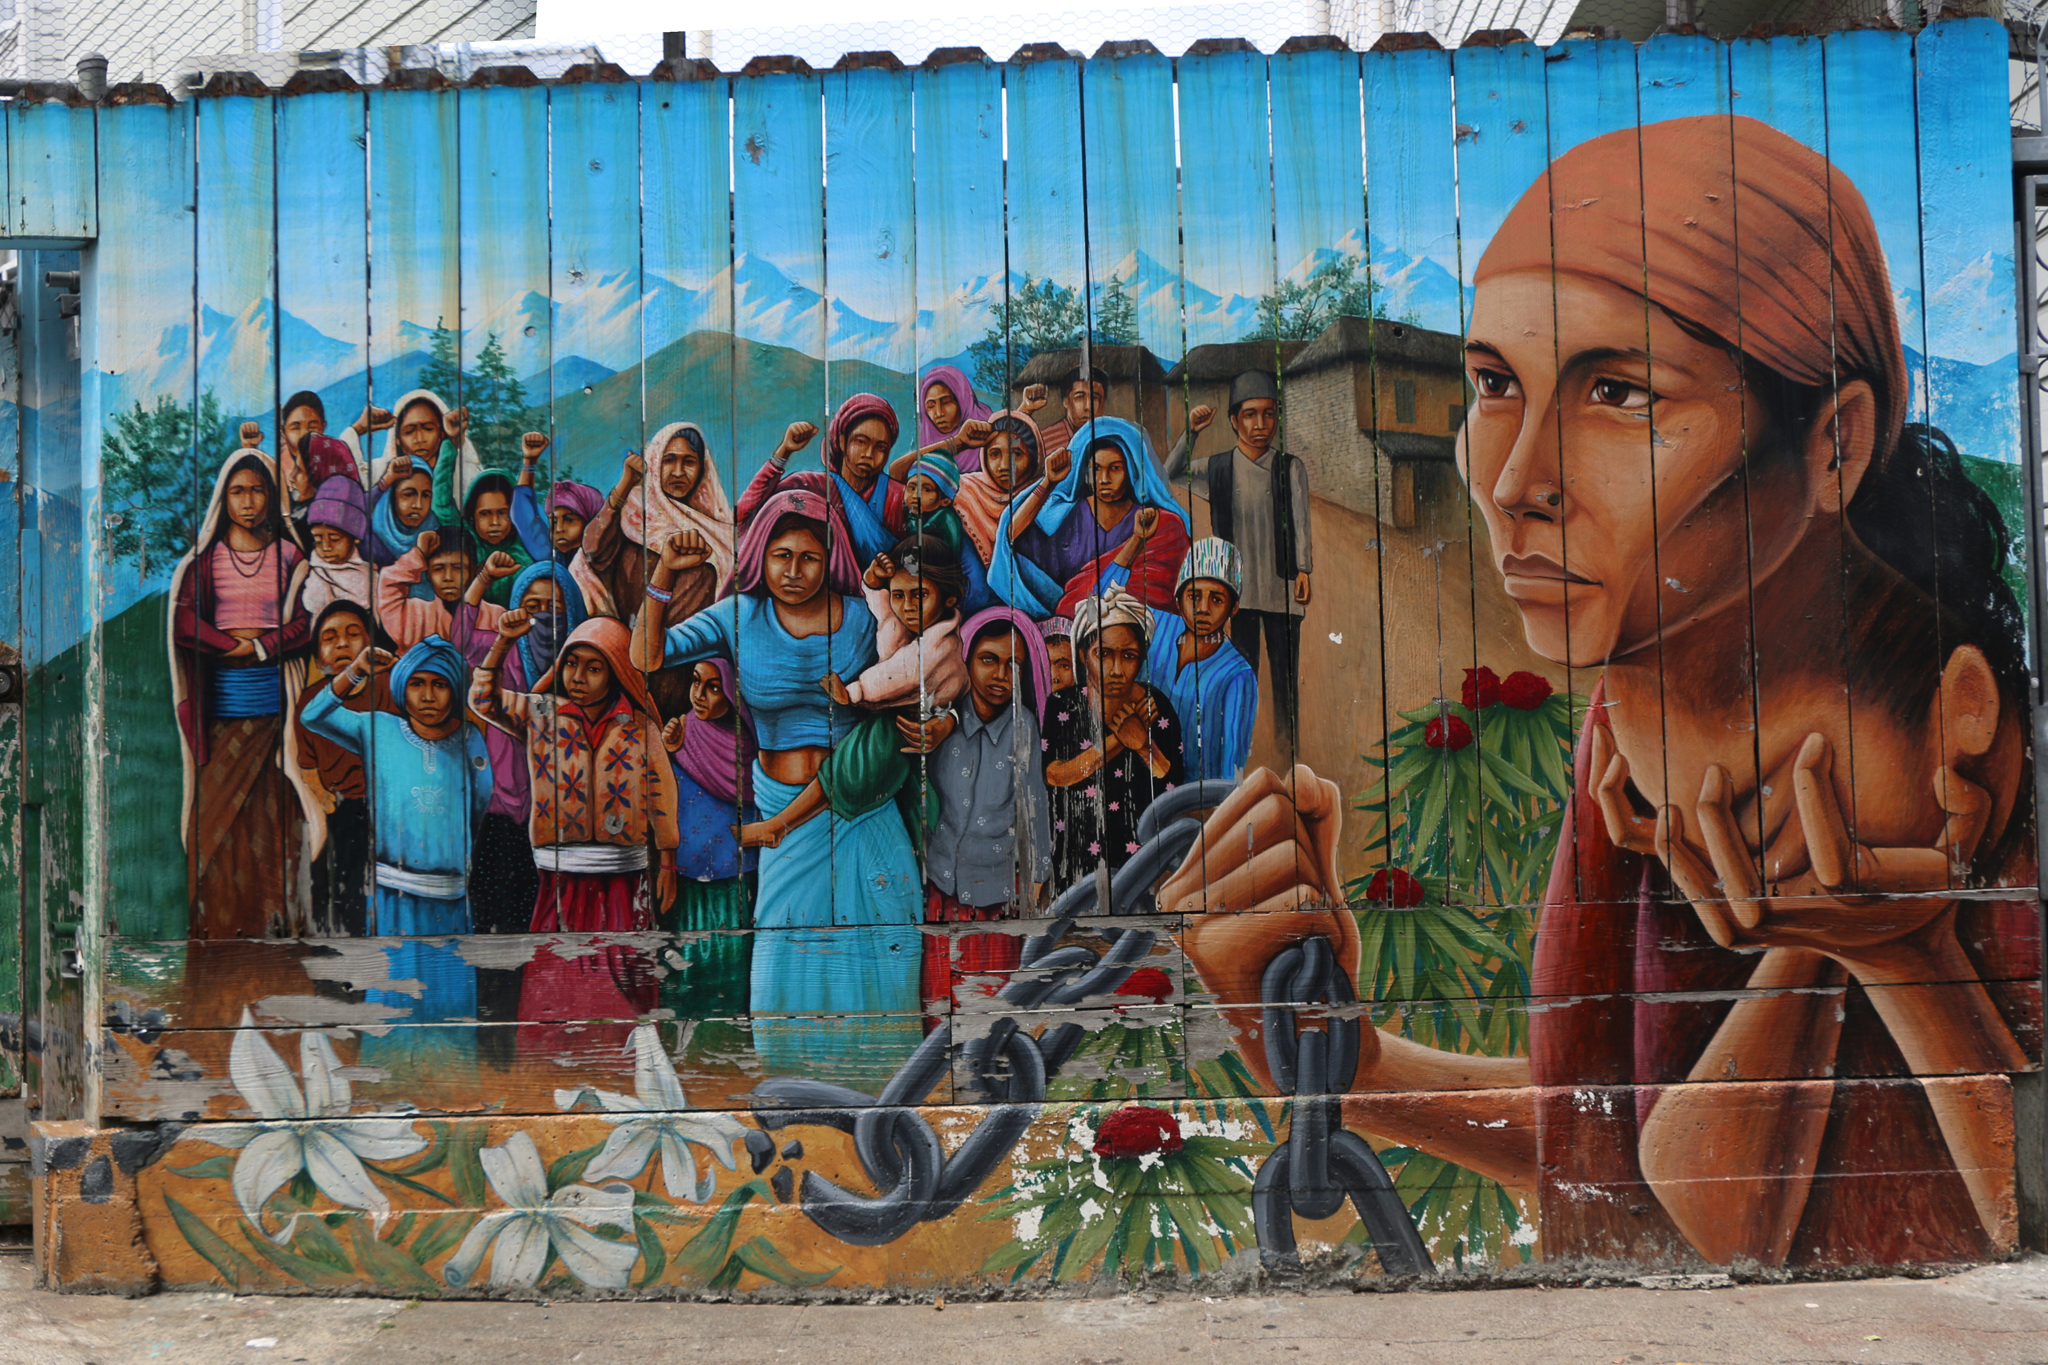 Cool san francisco tours for locals and tourists for Austin mural tour